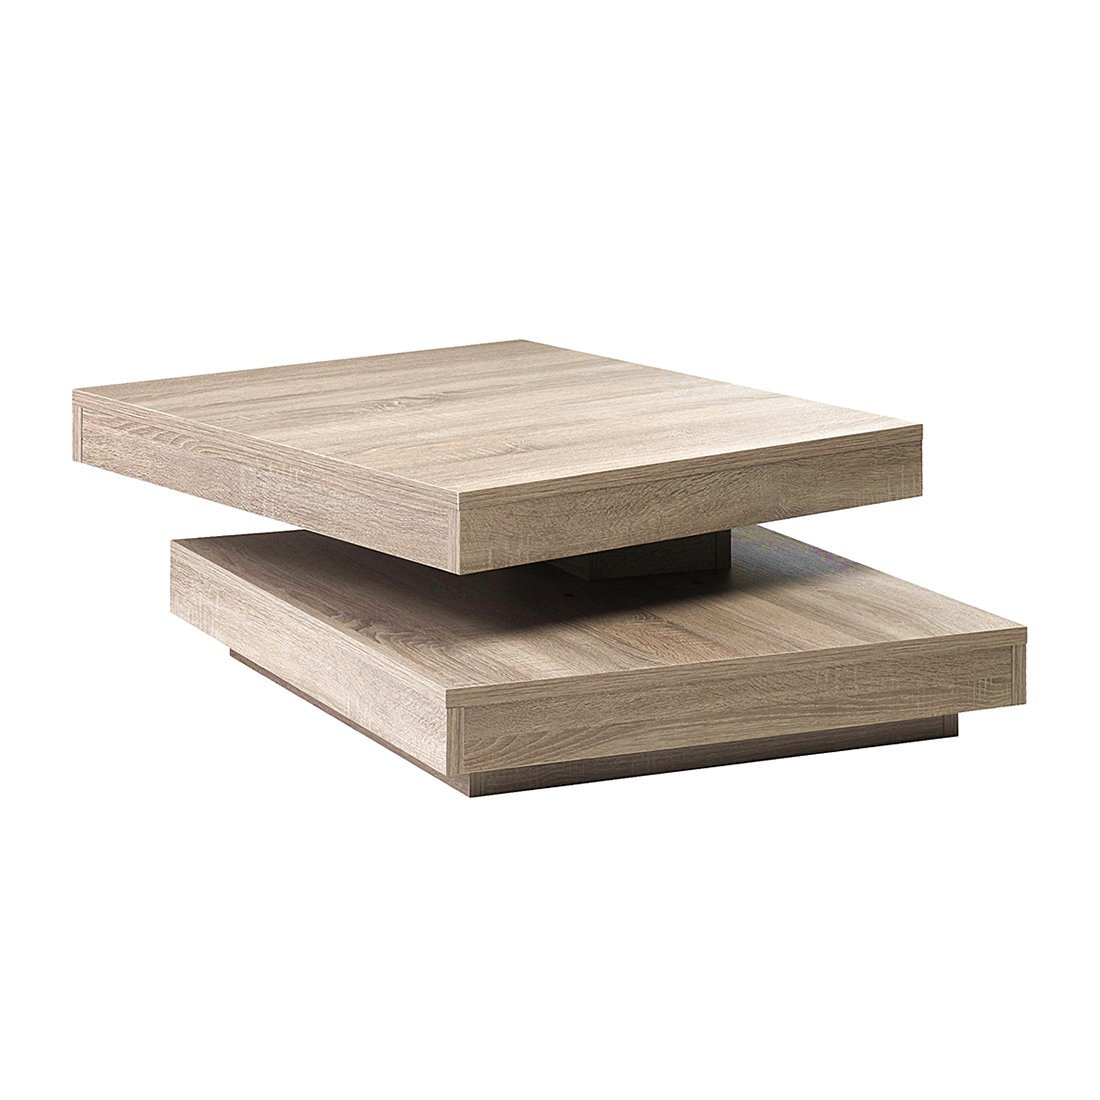 Table basse chene clair - Table basse chene clair ...